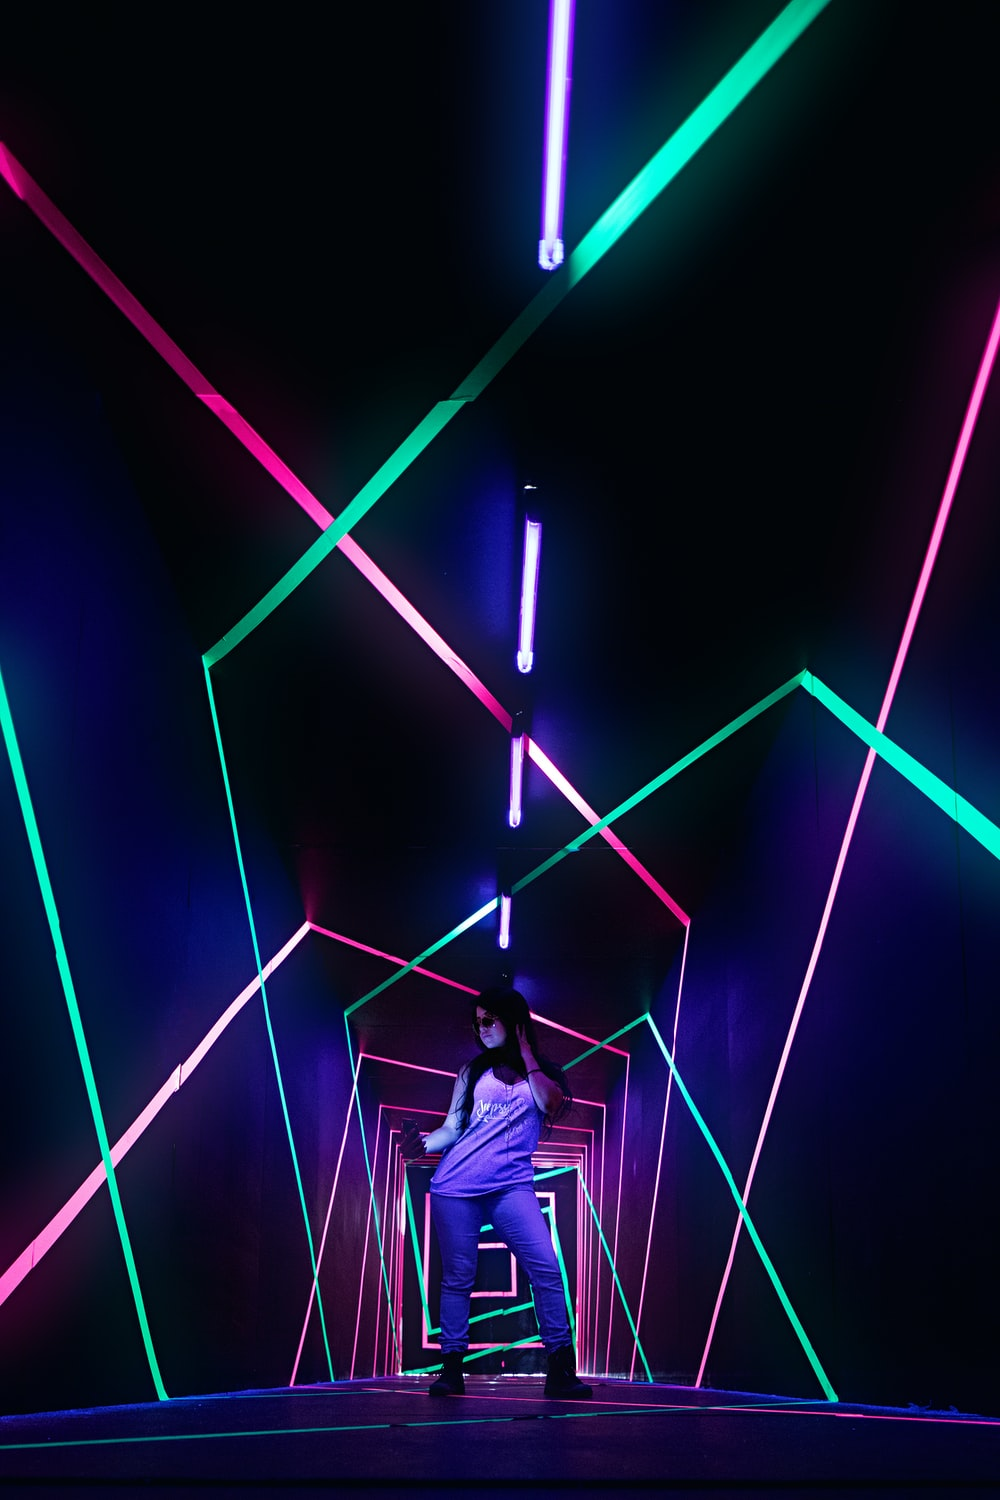 man standing in a LED archway